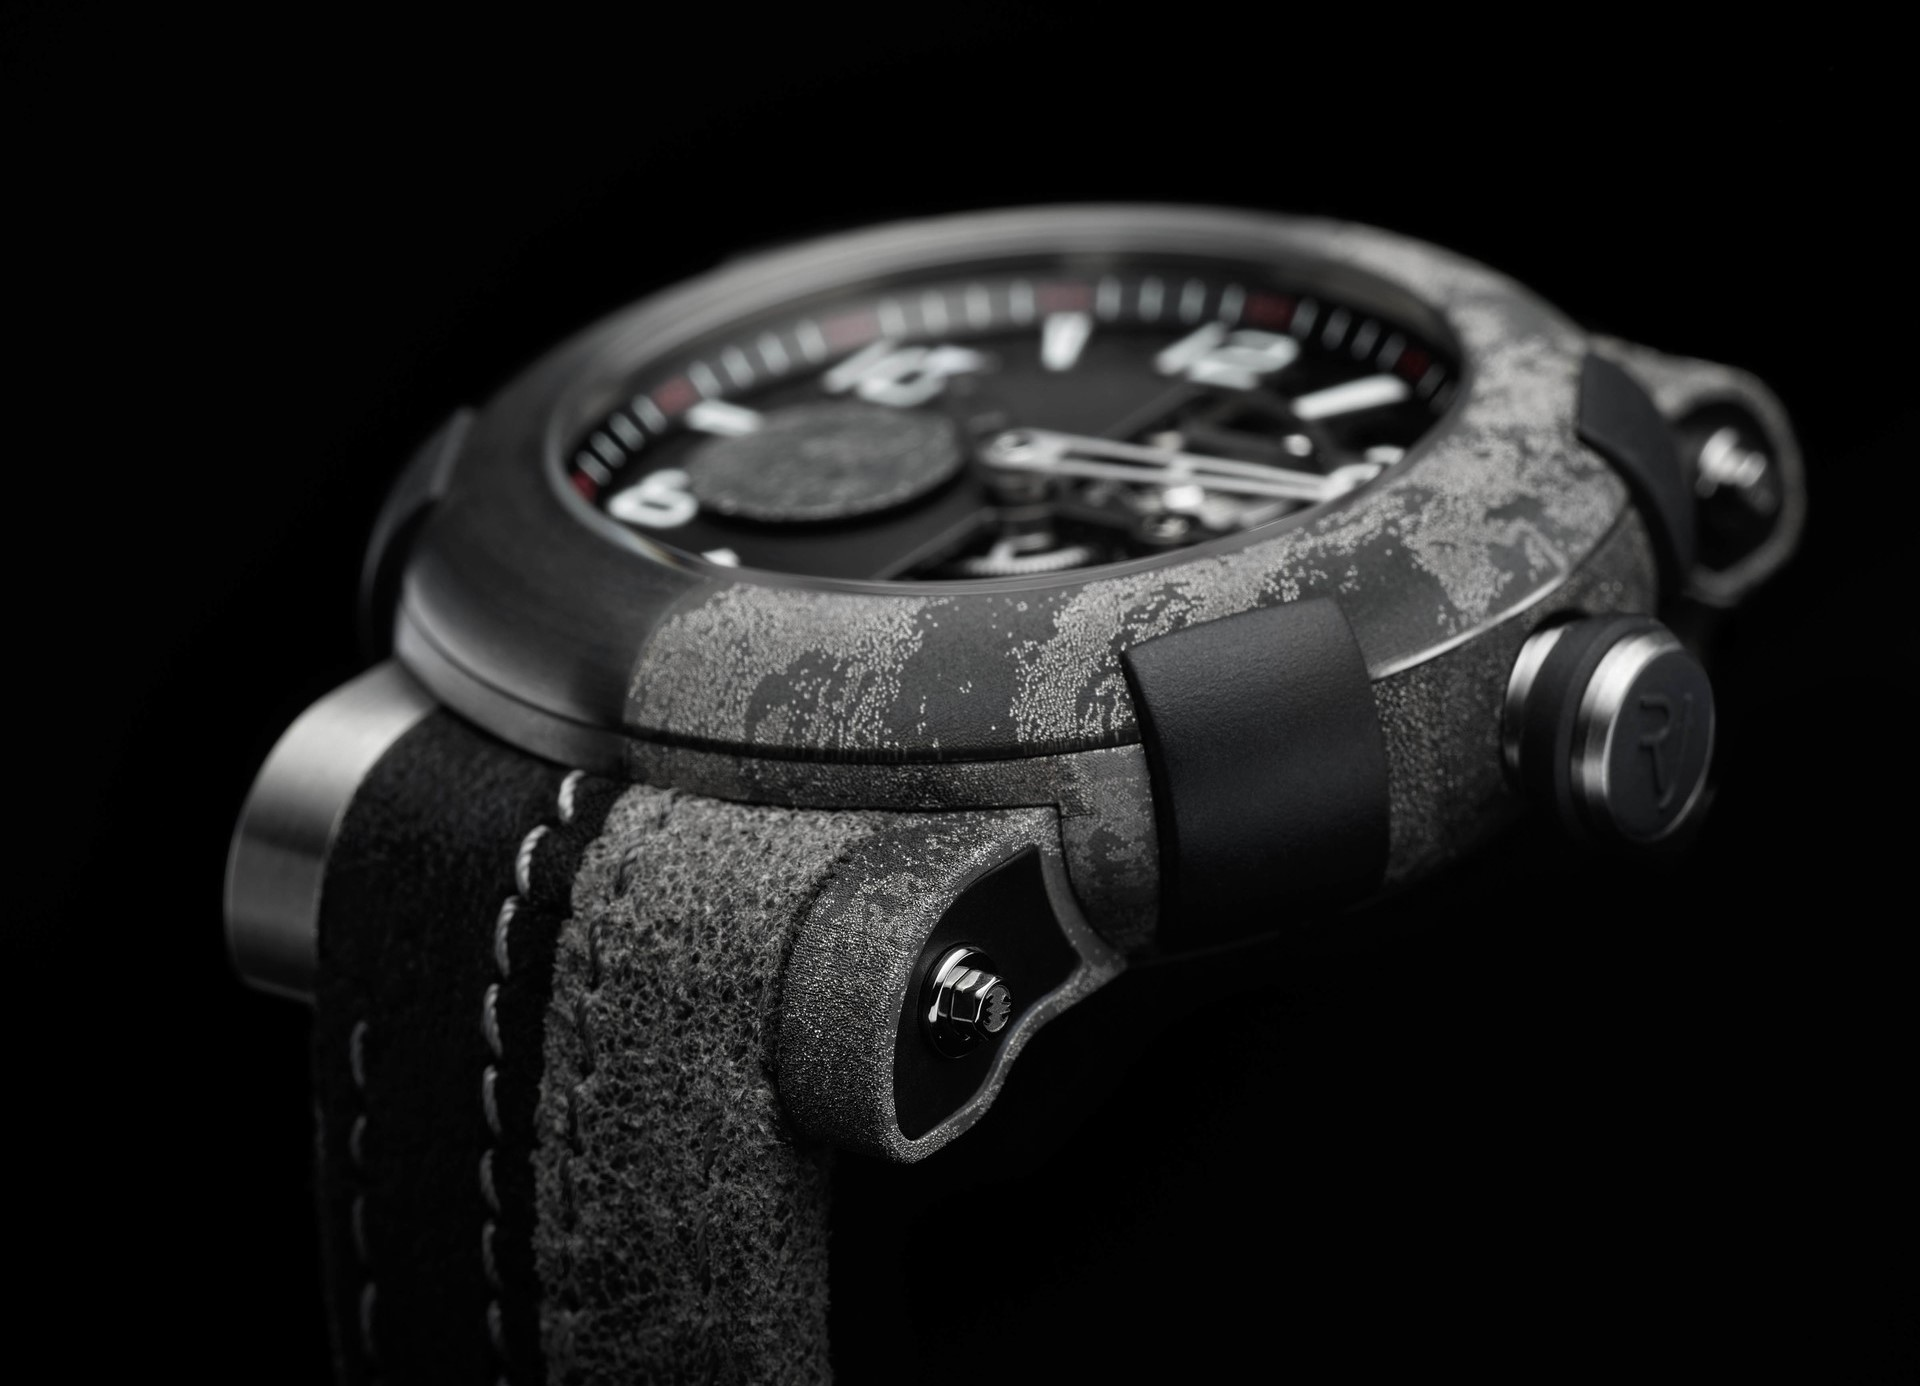 RJ ARRAW Two-Face Watch